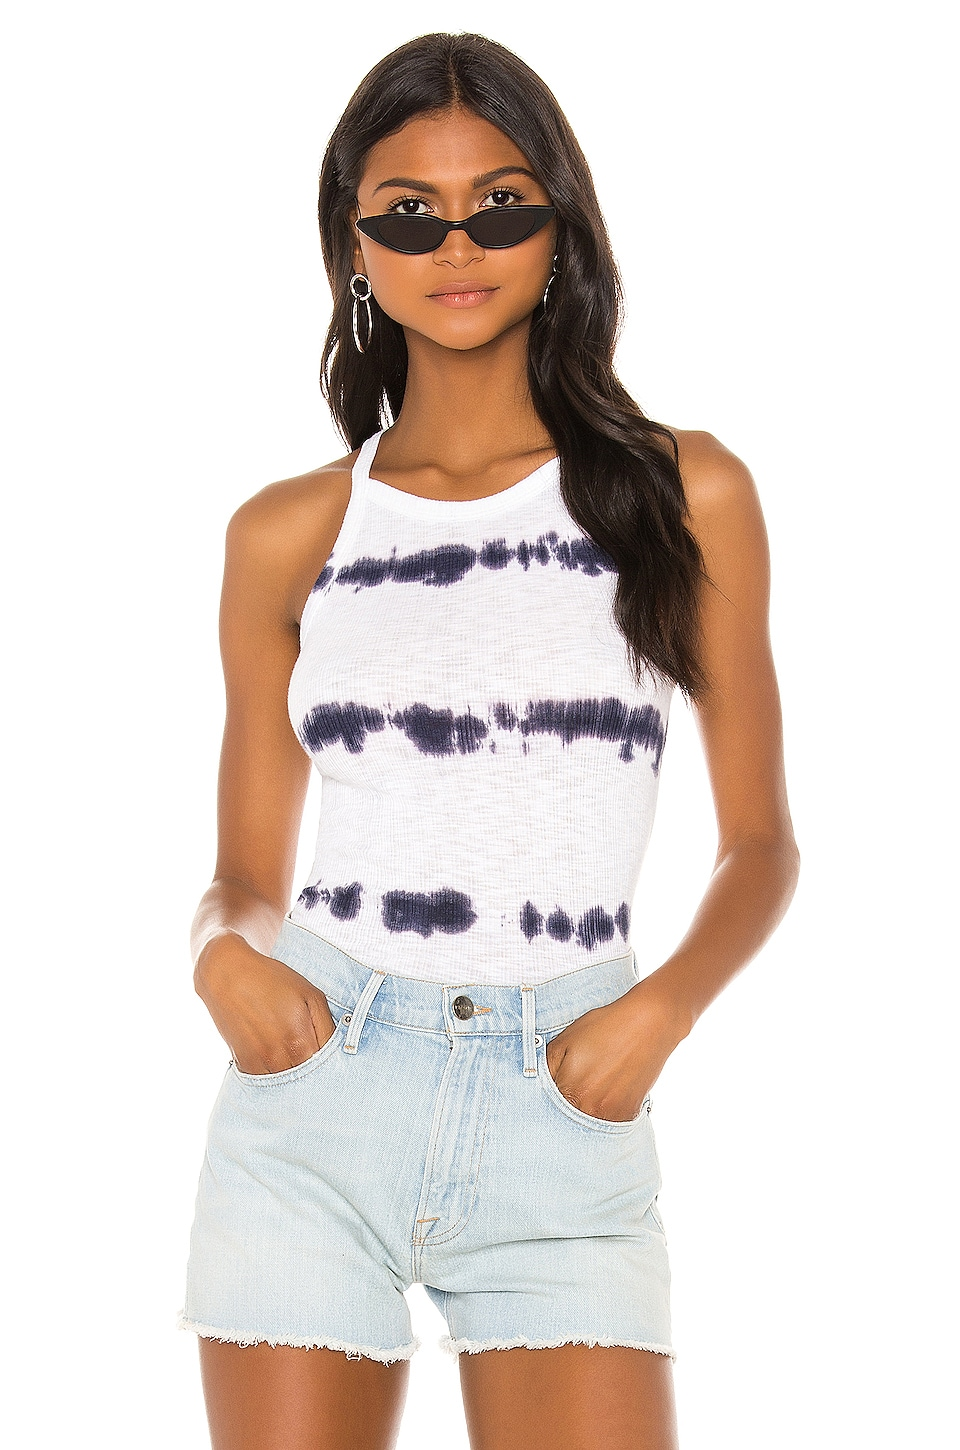 SUNDRY Tie Dye Strappy Tank Top in White